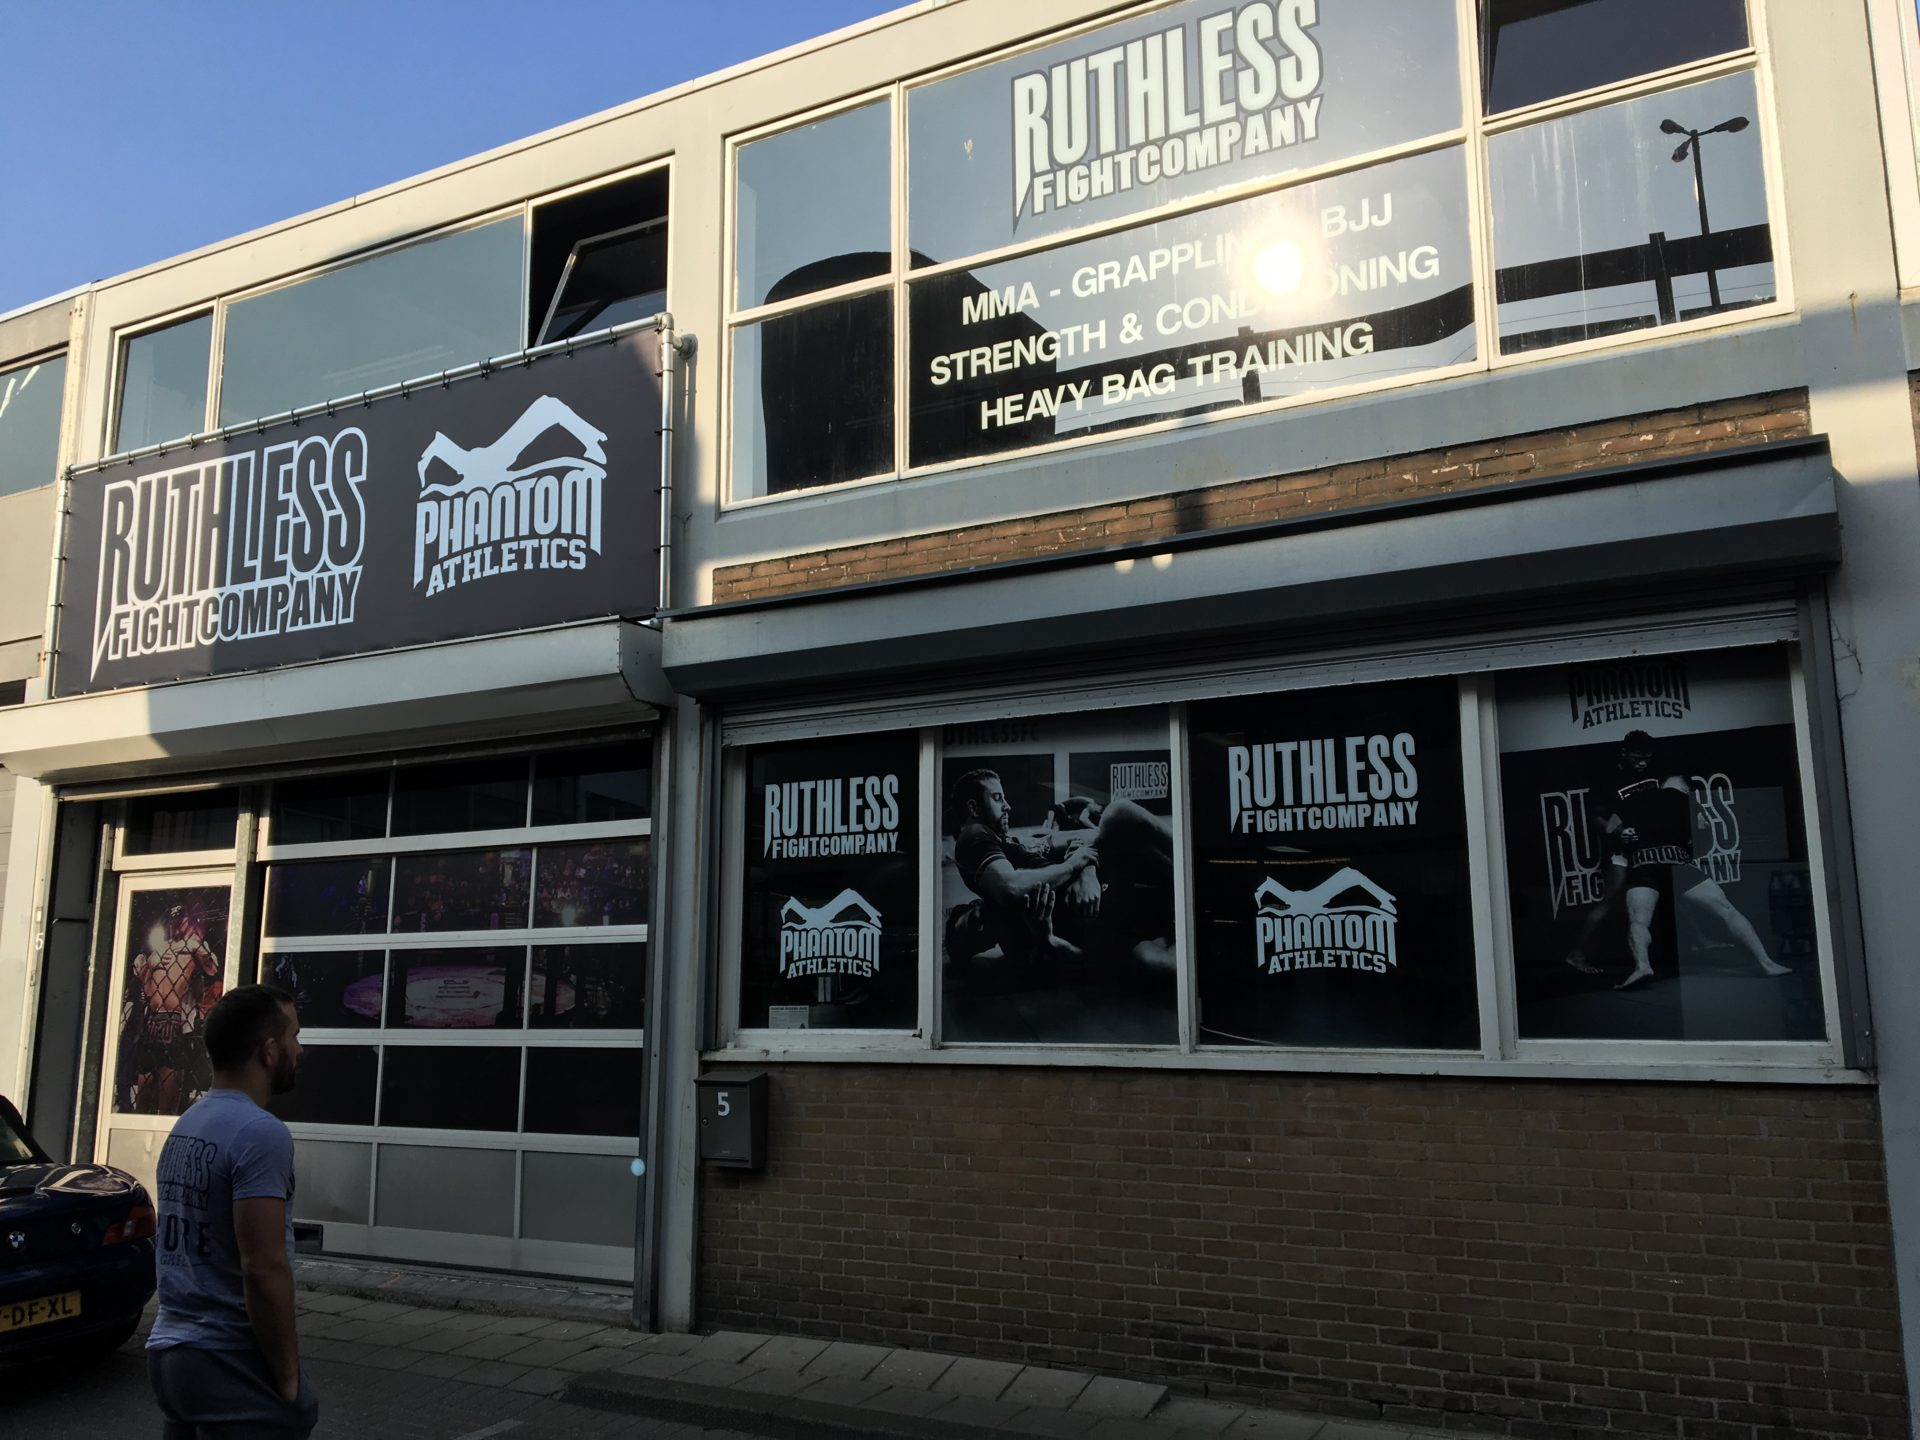 Ruthless fight company raambelettering bestickering